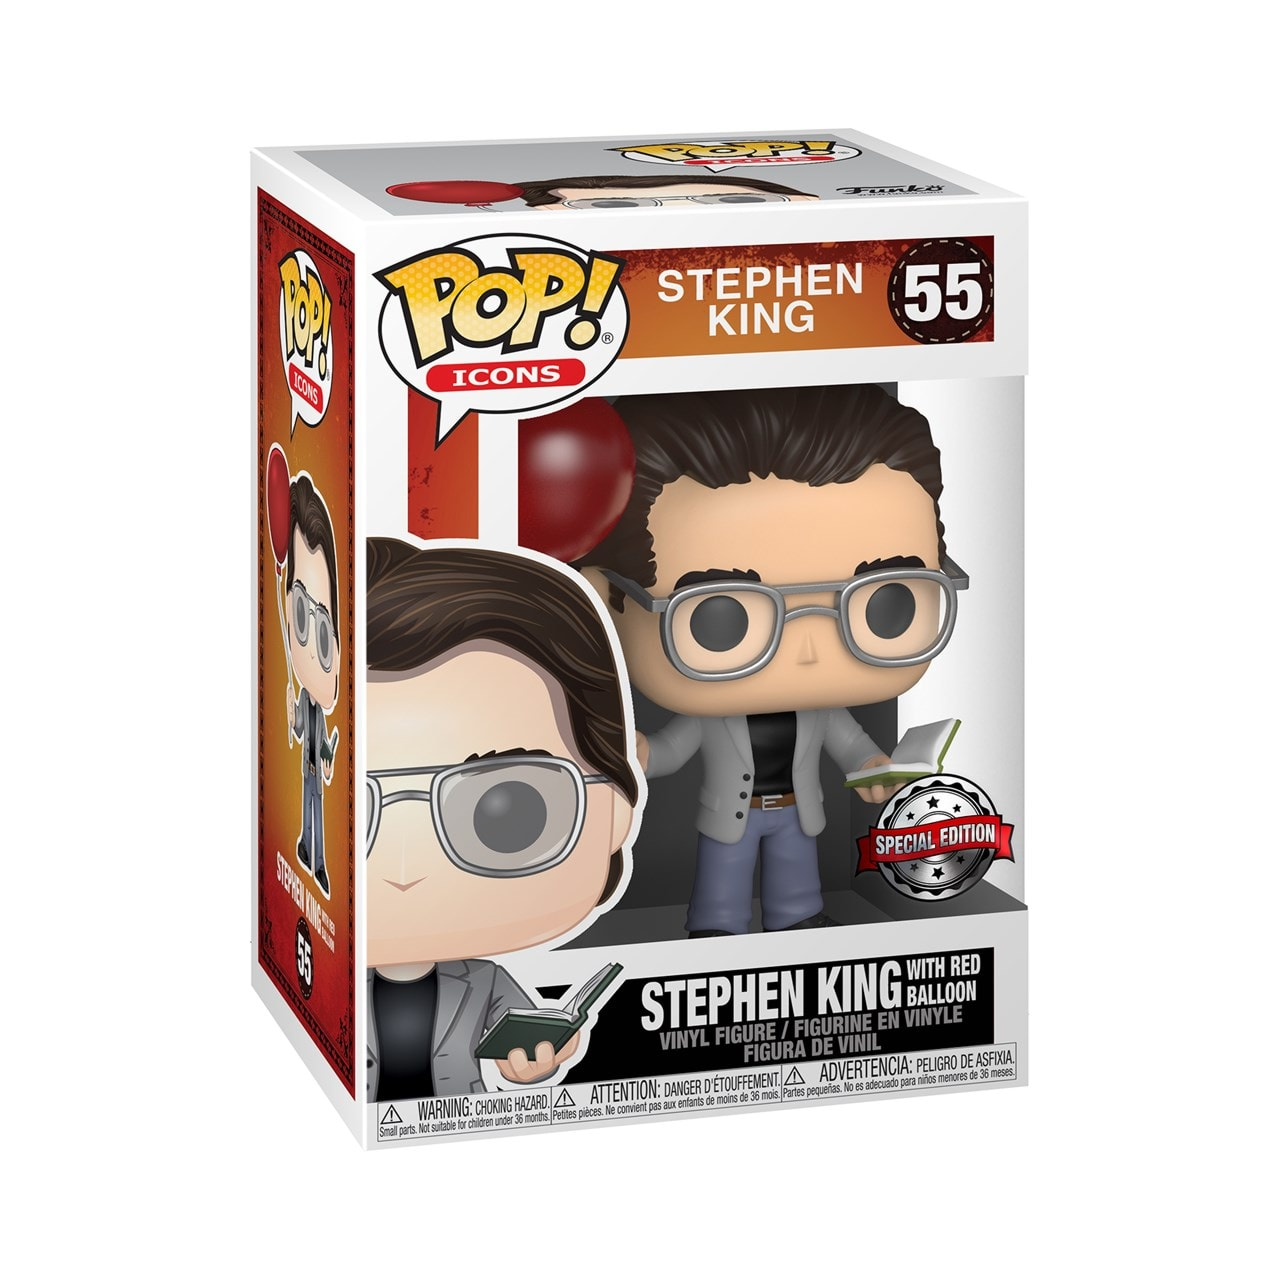 Stephen King with Red Balloon (55) Pop Icons (hmv Exclusive) Pop Vinyl - 2